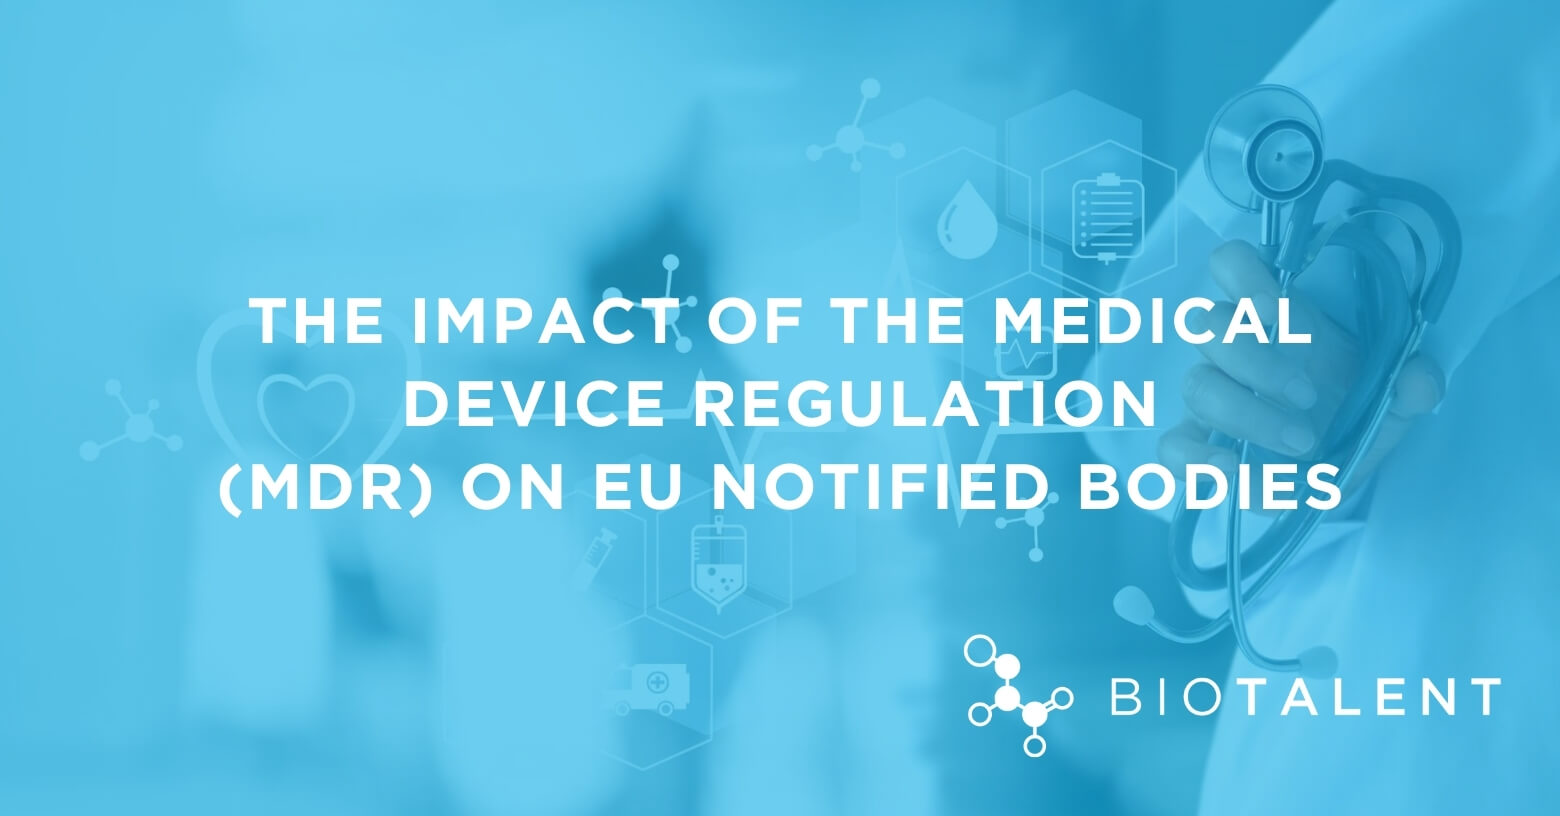 The Impact of the Medical Device Regulation (MDR) on EU Notified Bodies